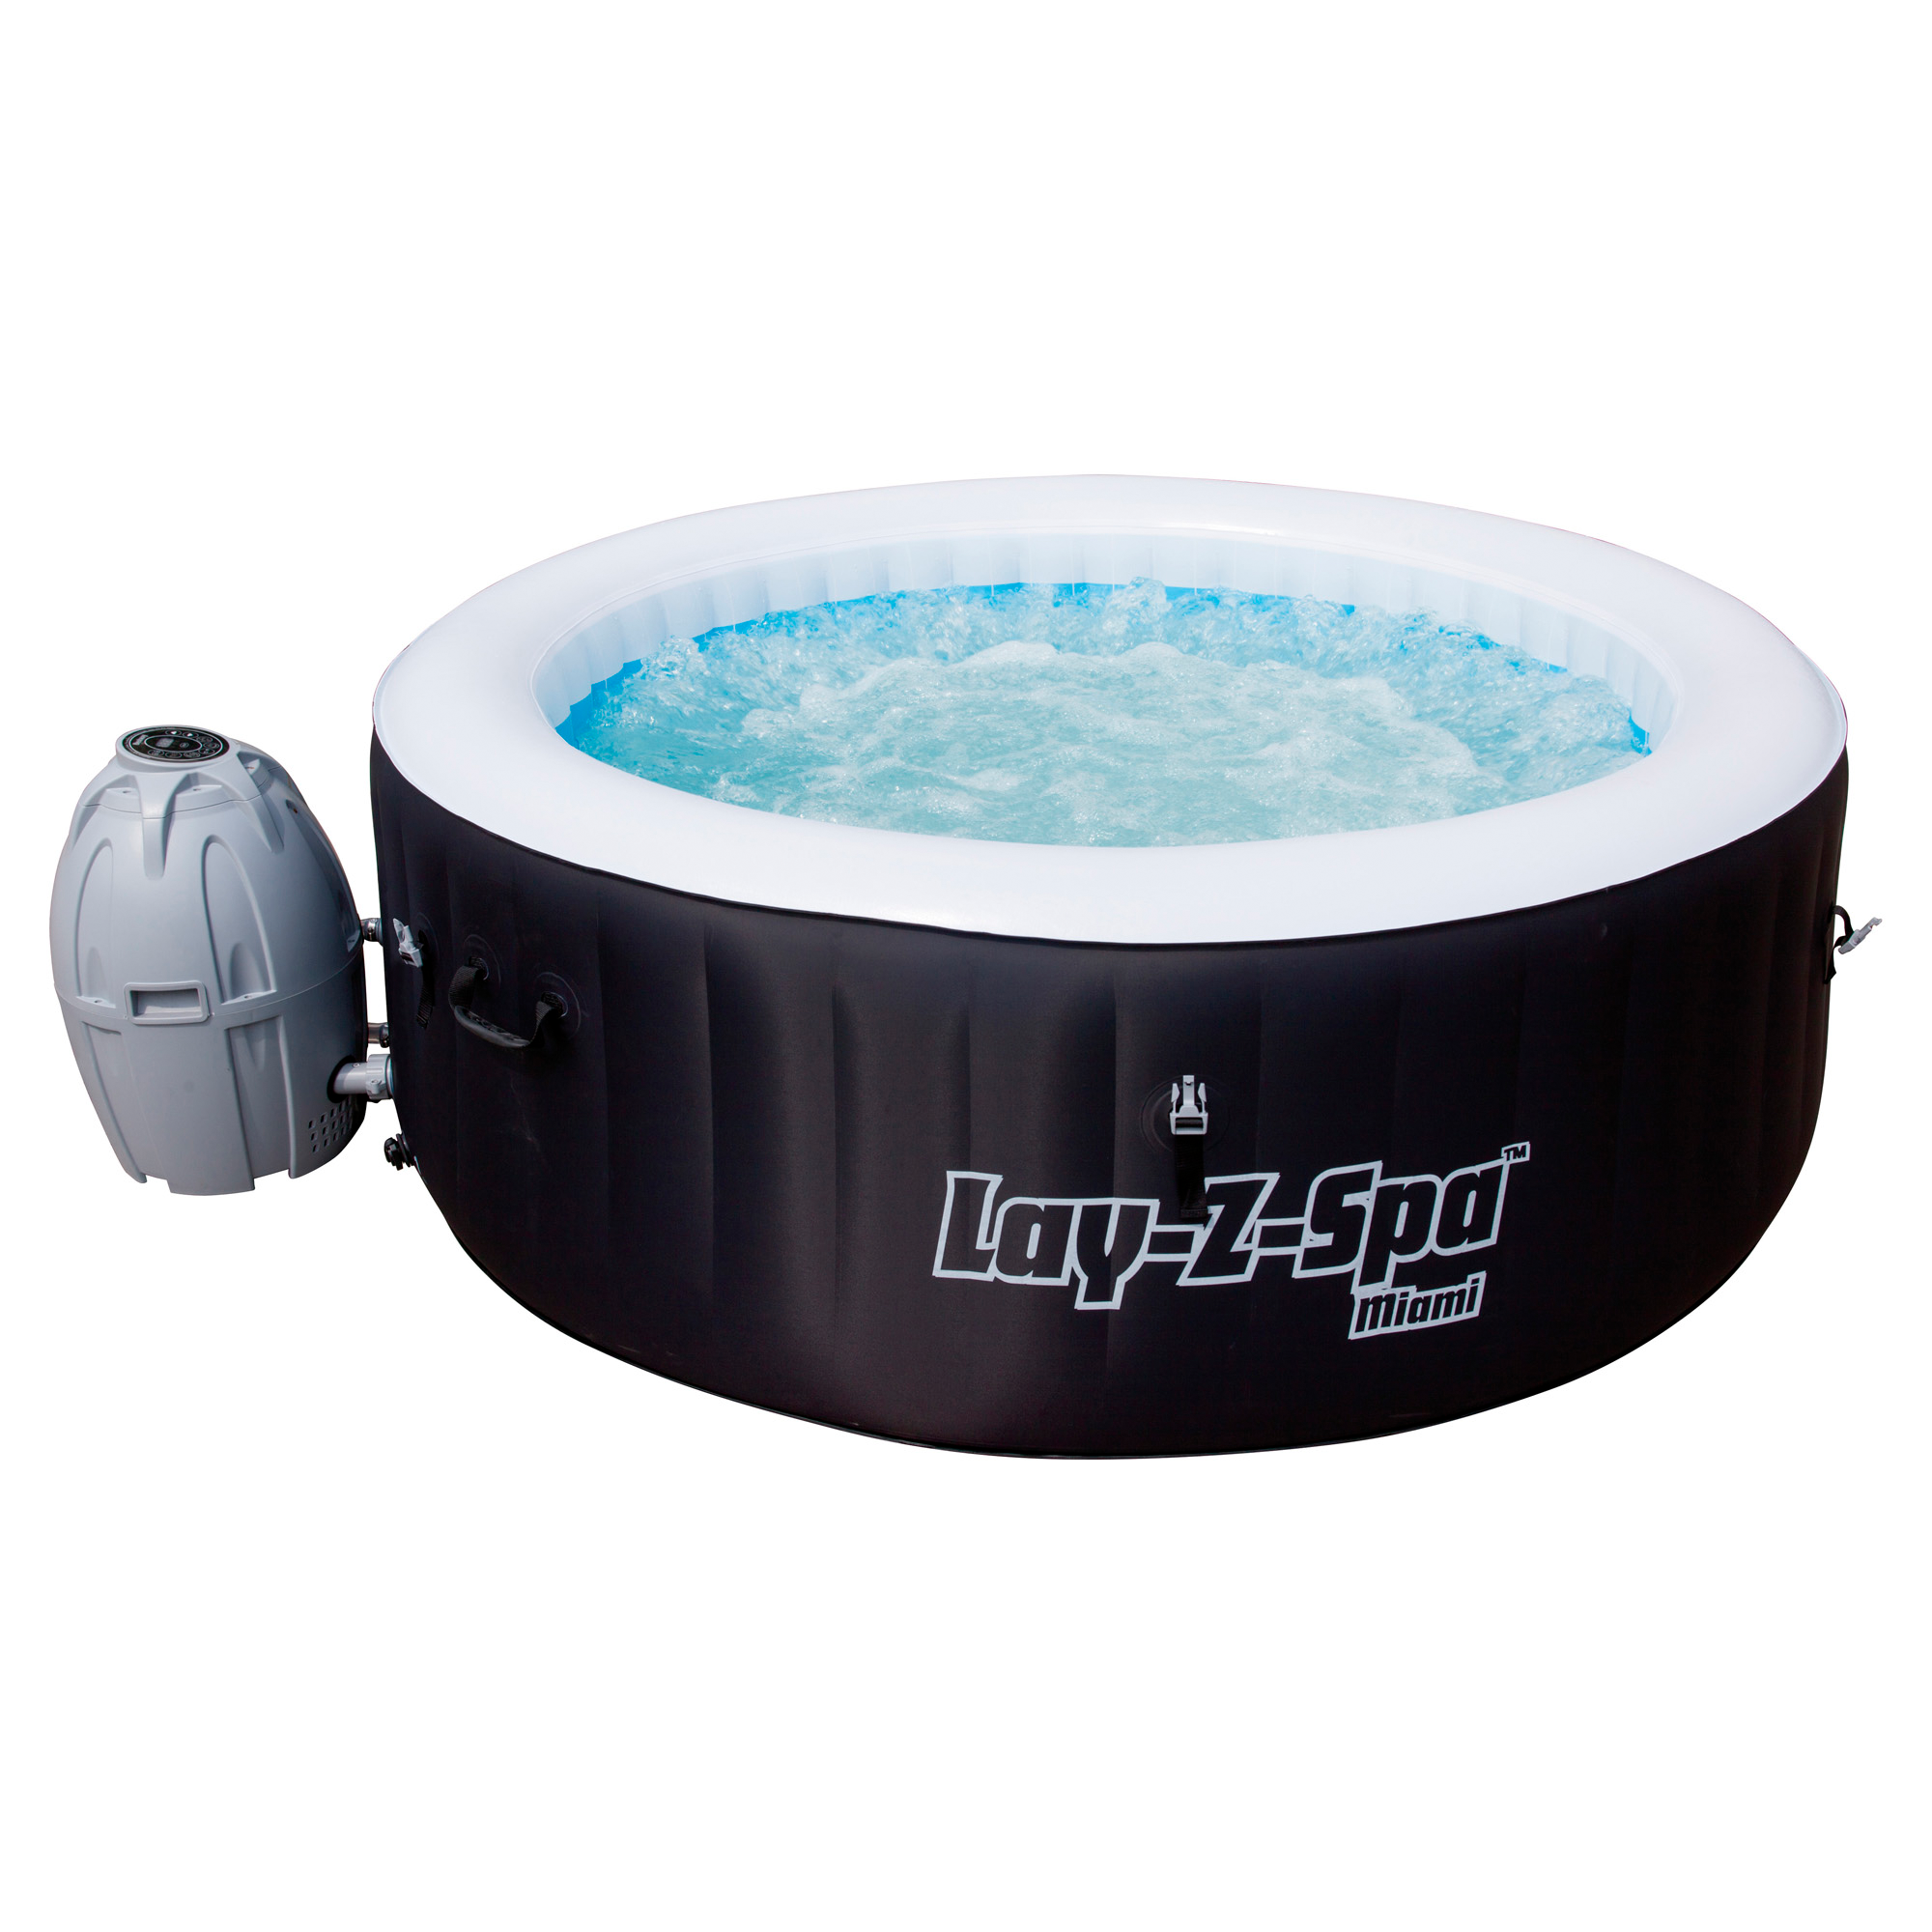 Finest Affordable Elegant Whirlpool Uelayzspauc Miami Aufblasbar X Cm With  Garten Pool Aufblasbar With Whirlpool Garten Aufblasbar With Pool Garten ...